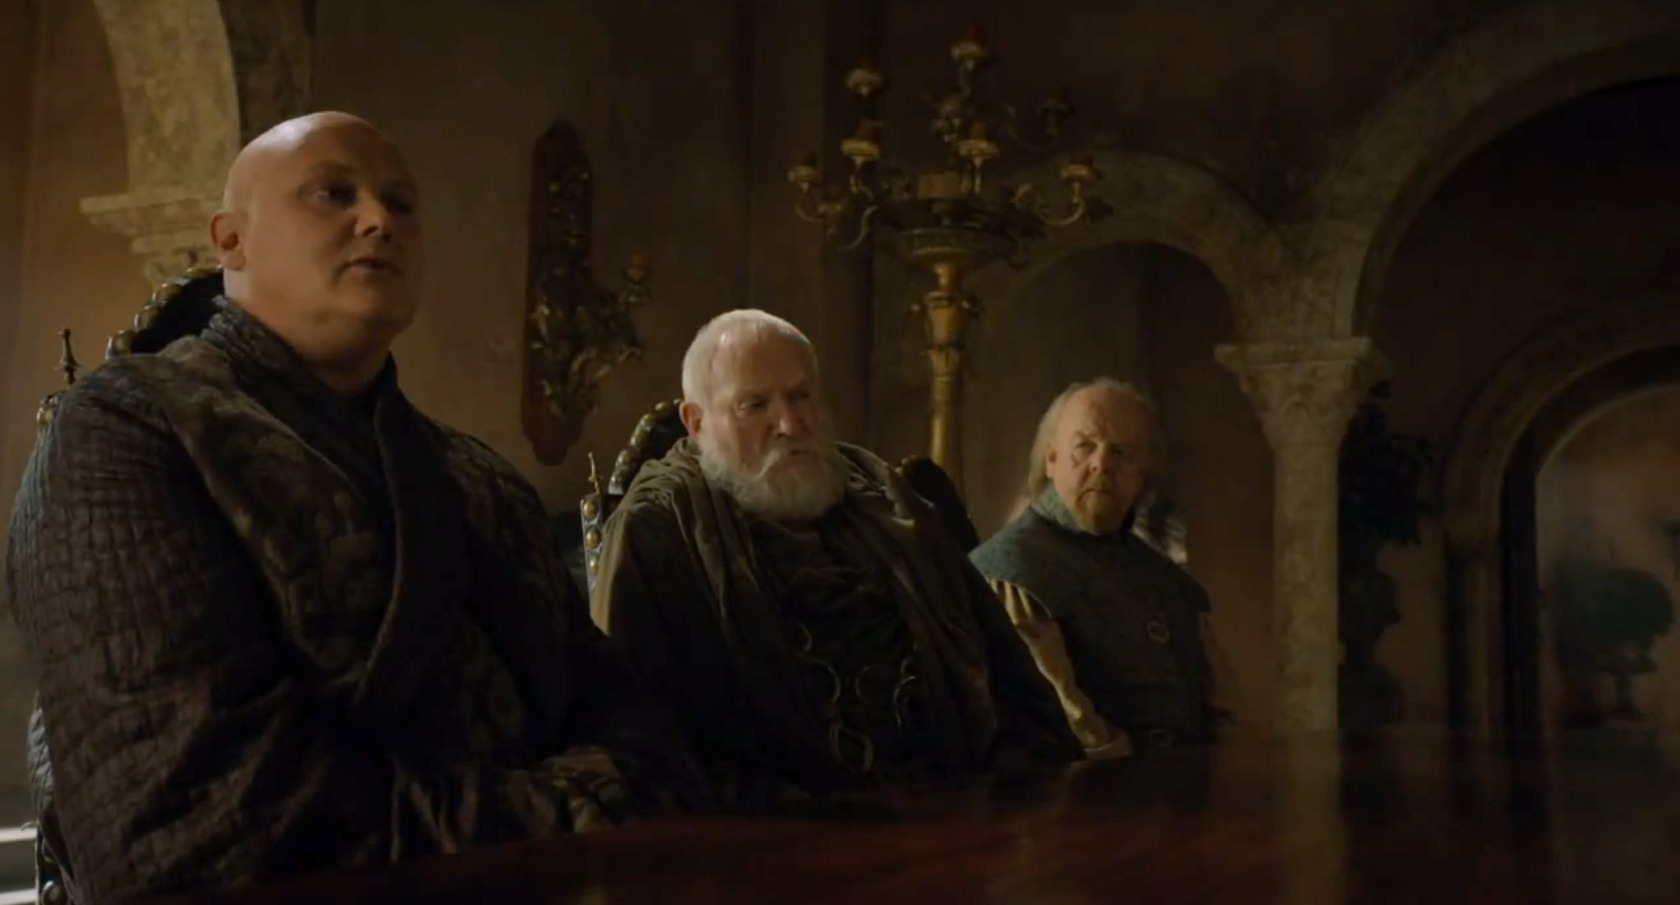 5-varys-game-of-thrones-laws-of-gods-and-men-recap-tyrion-unleashed